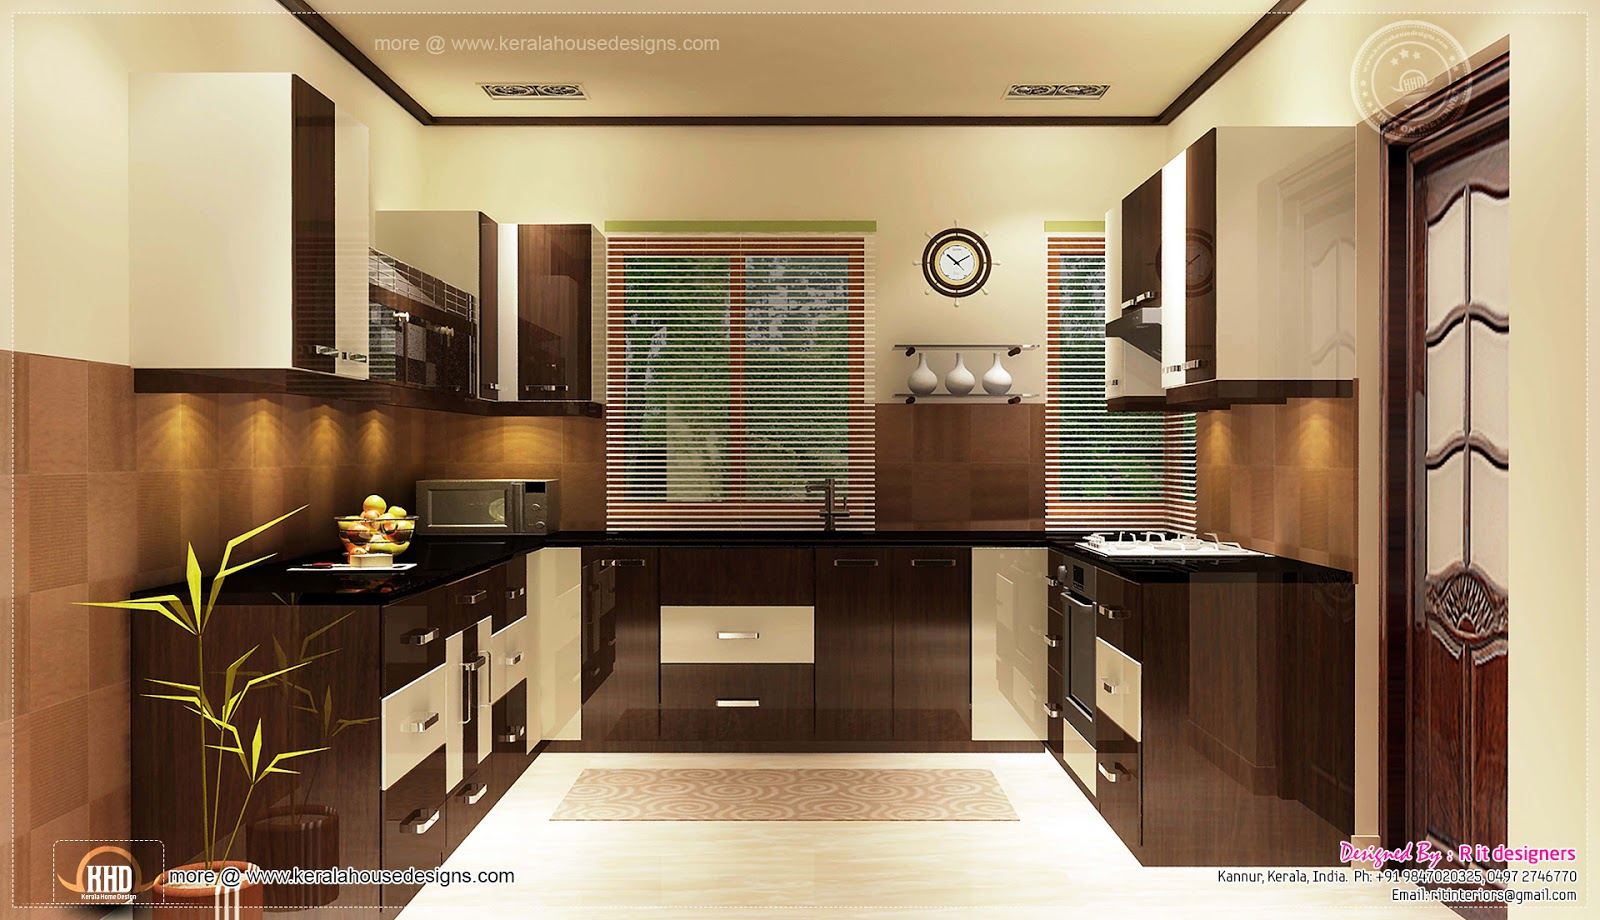 Home interior designs by rit designers kerala home for Interior designs for home